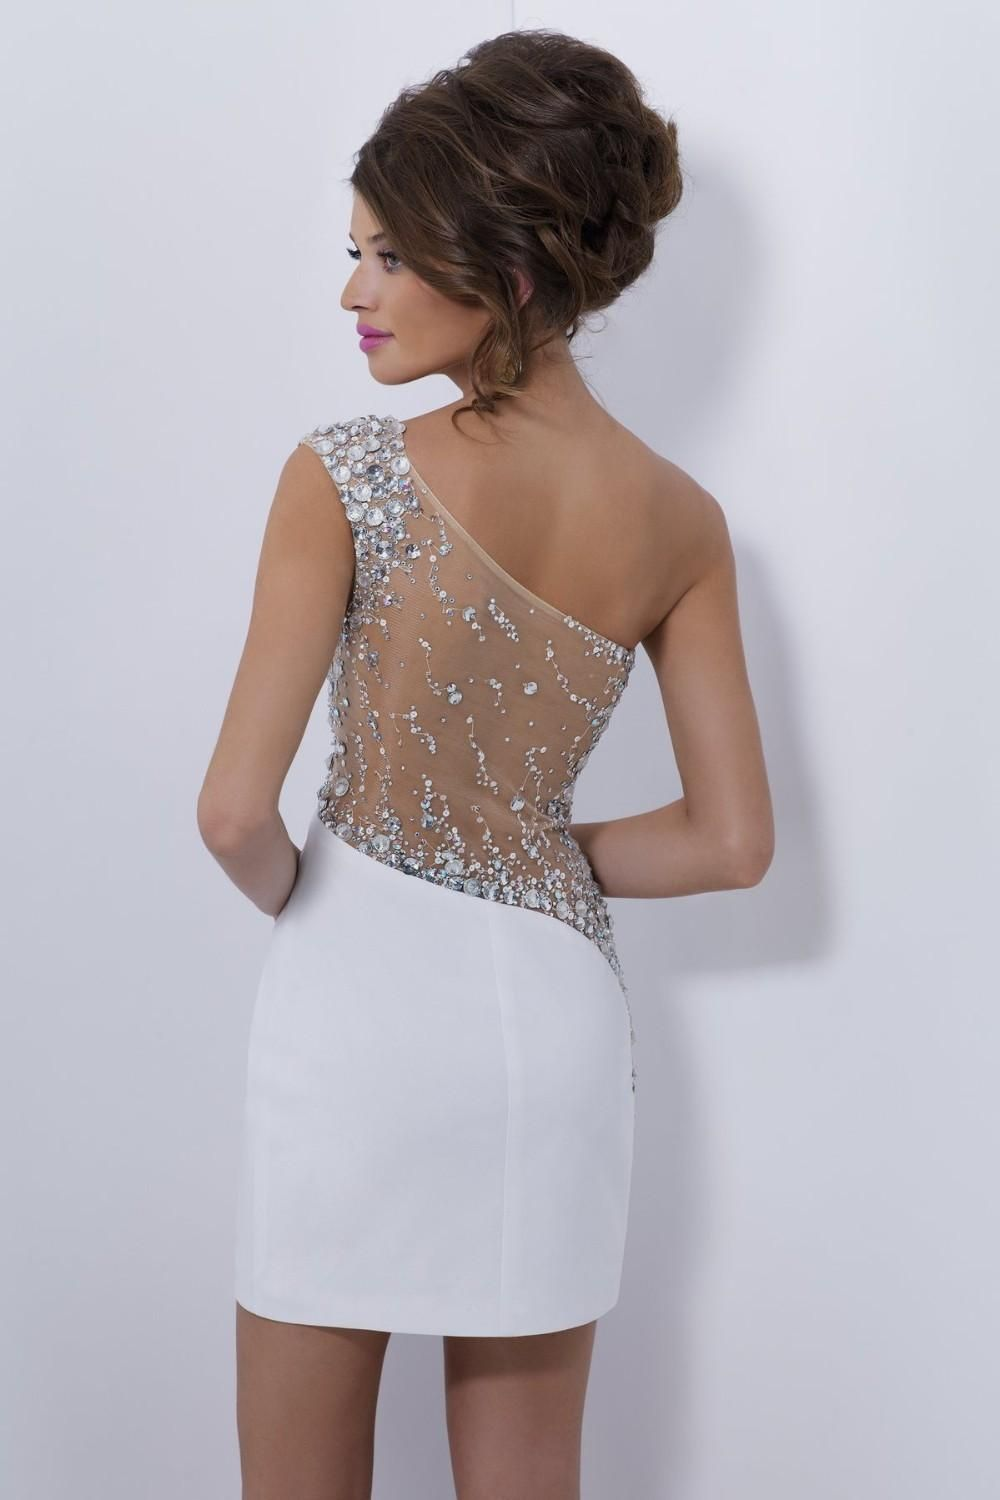 short tight wedding dresses – Wedding | backless galore | Pinterest ...